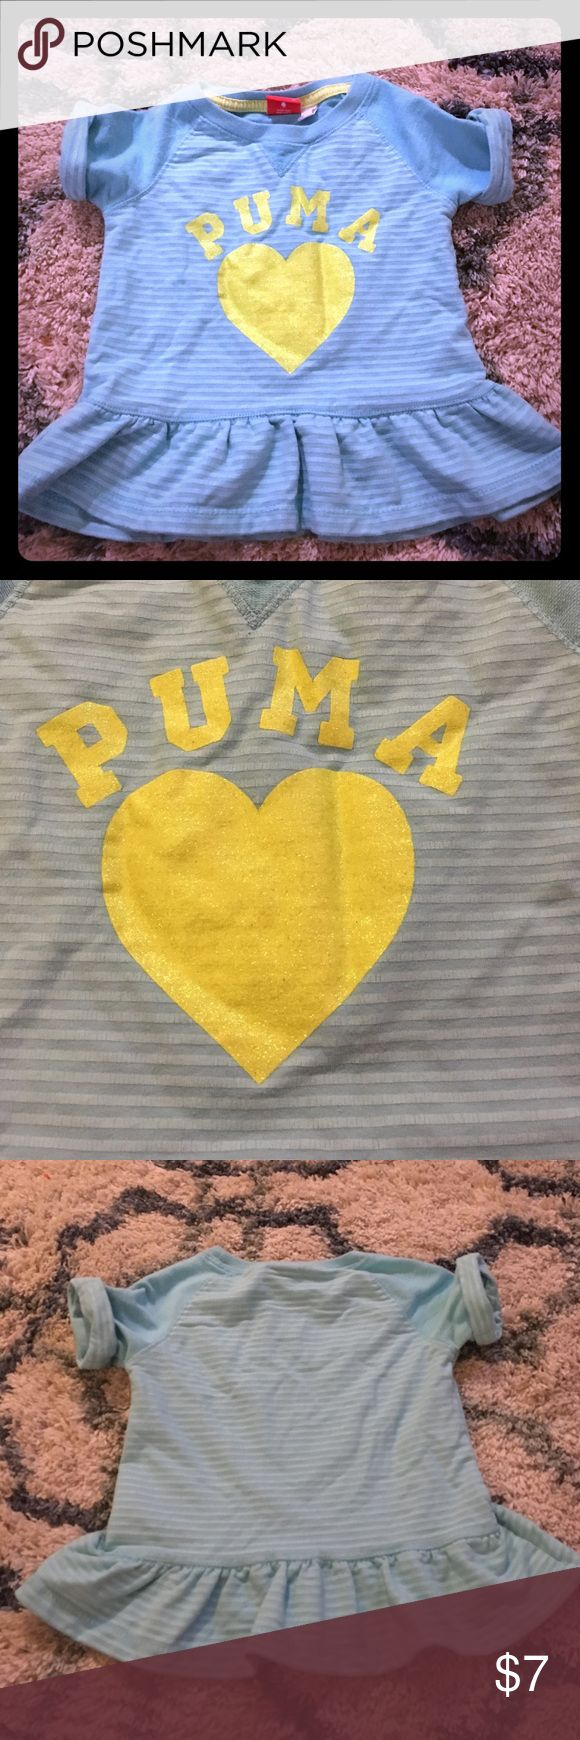 Puma shirt sleeve sweater top Adorable bright green and blue sparkly sweater like top Puma Shirts & Tops Sweaters